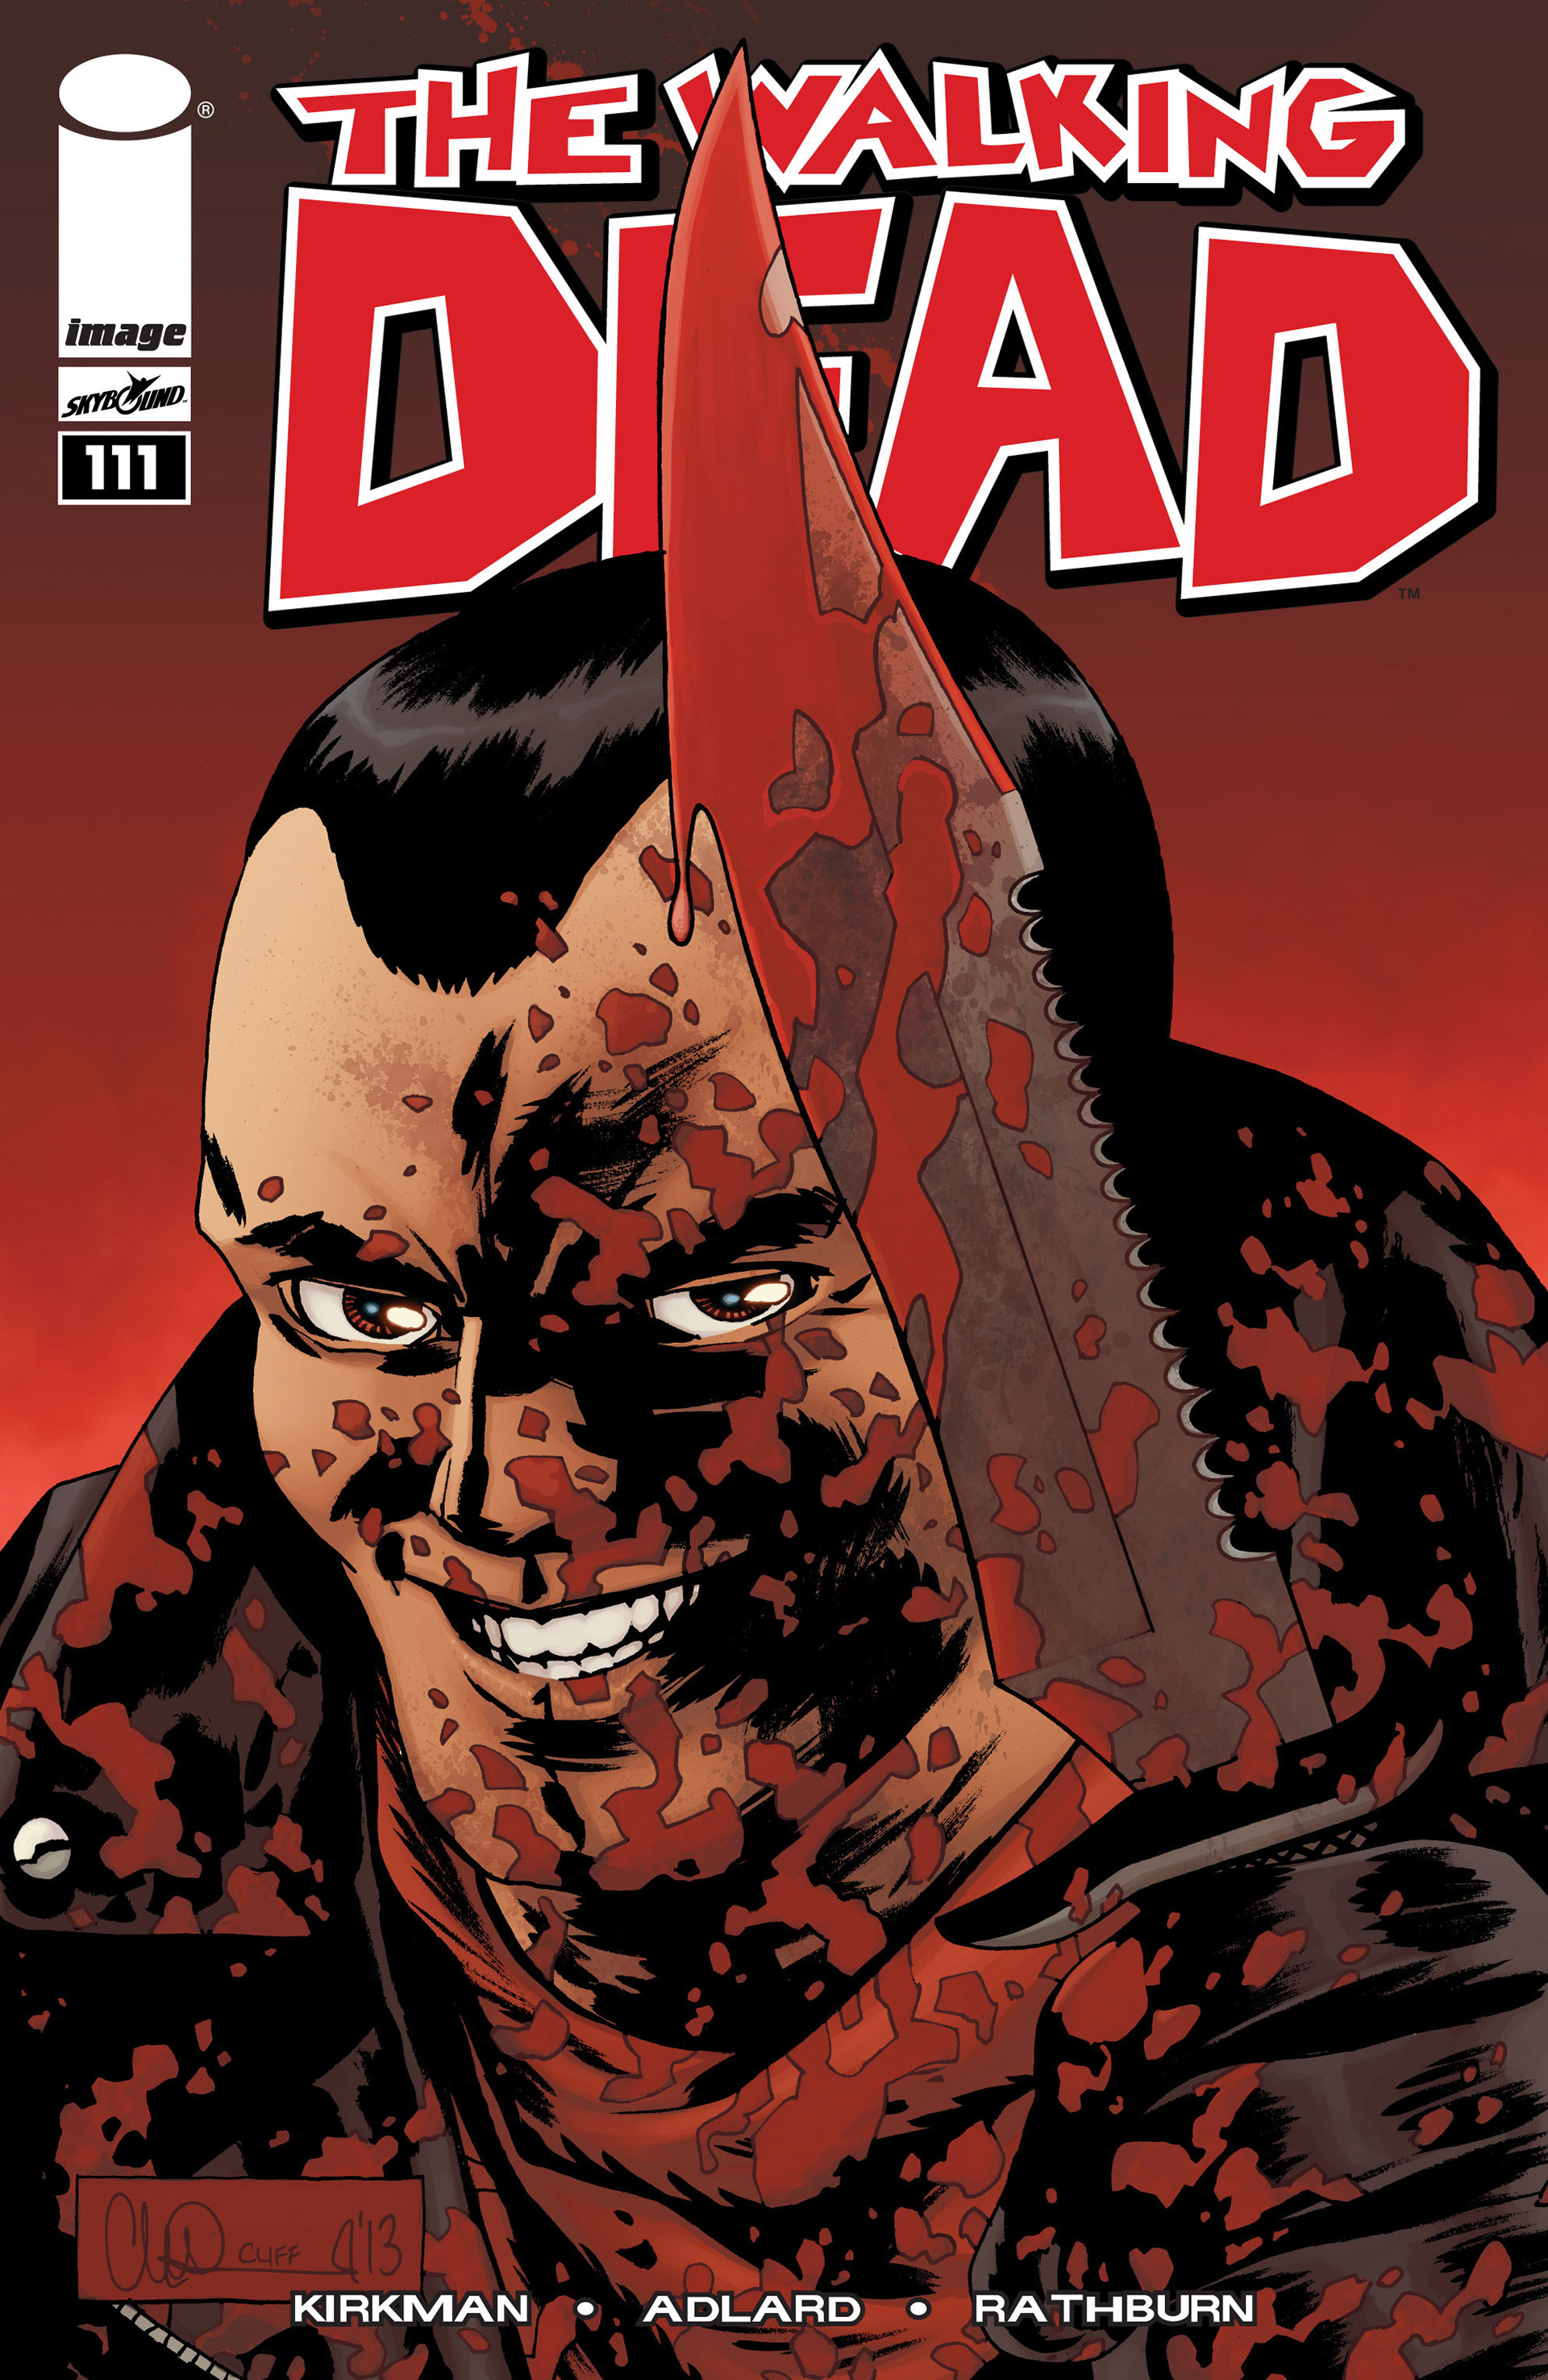 The Walking Dead 111 Page 1